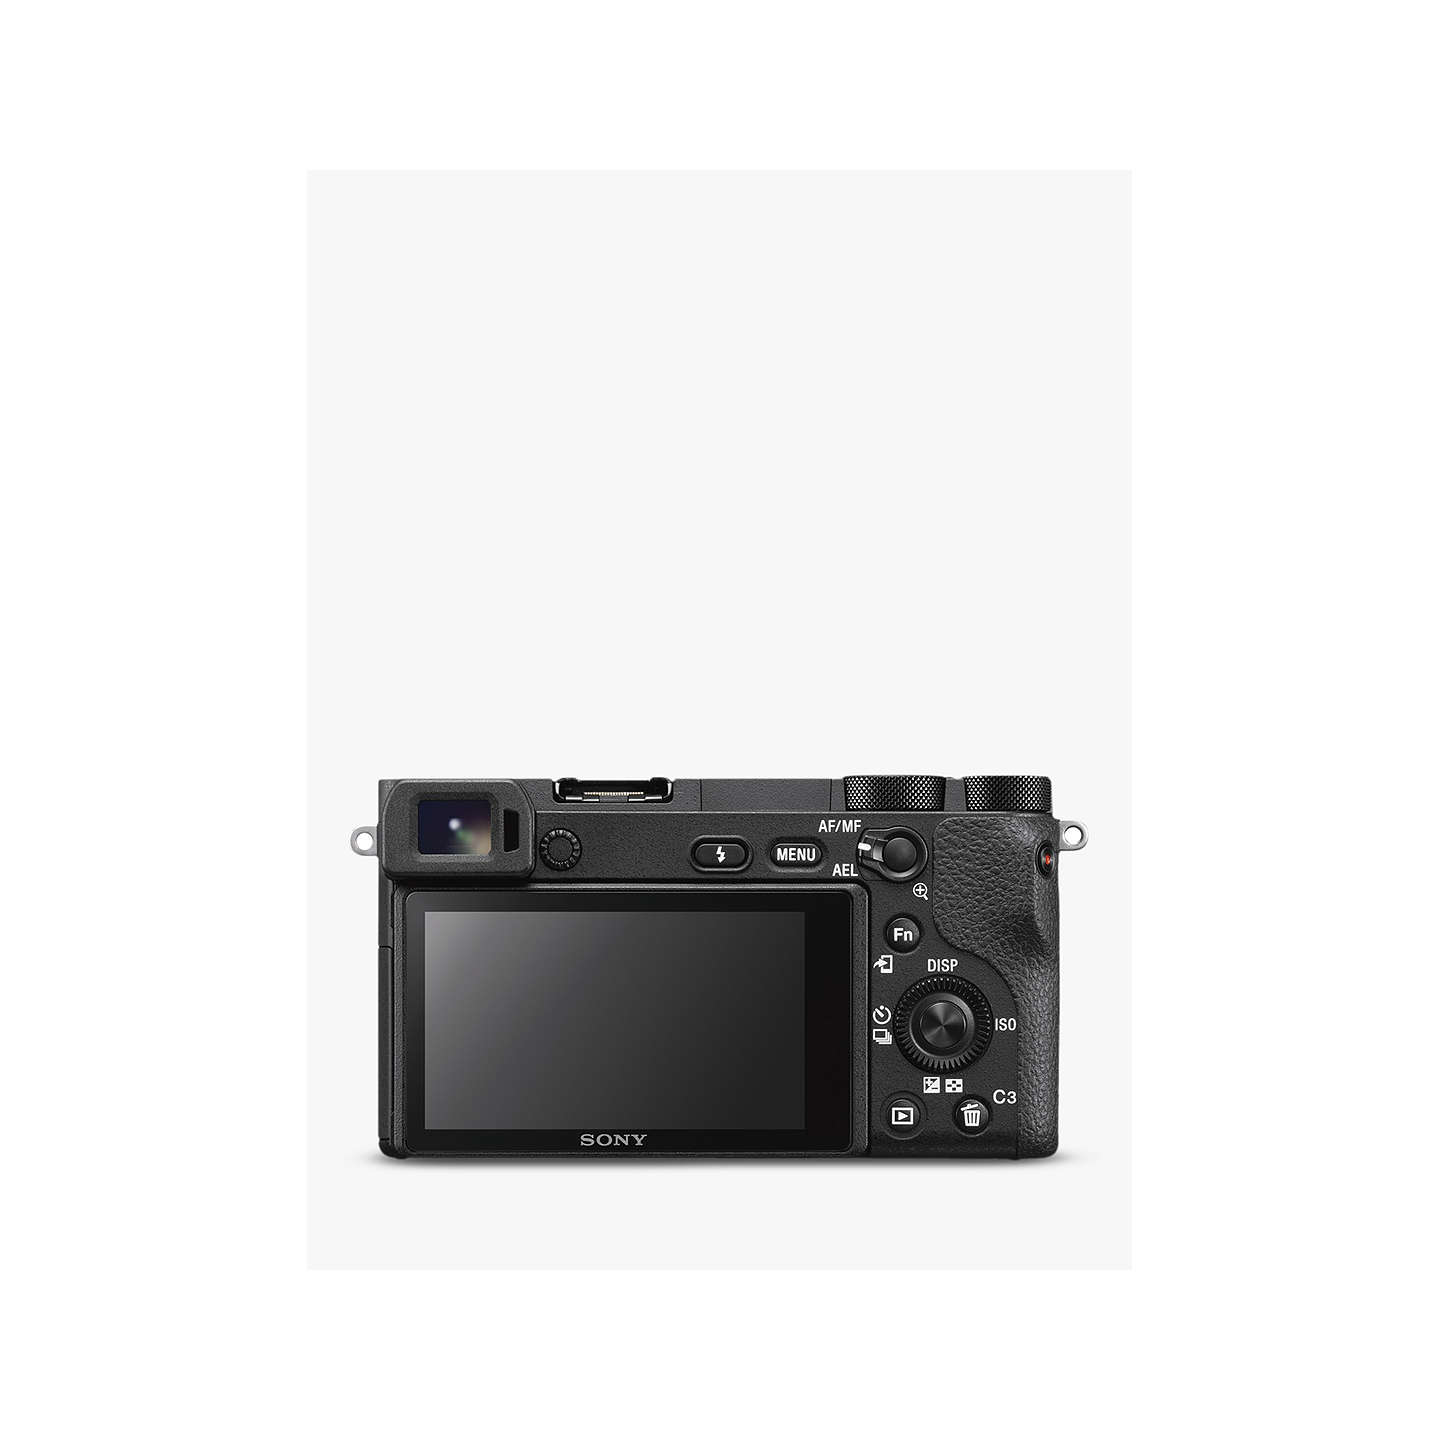 "BuySony A6500 Compact System Camera, 4K Ultra HD, 25MP, OLED Viewfinder, Wi-Fi, NFC, 3"" LCD Touchscreen, Body Only Online at johnlewis.com"